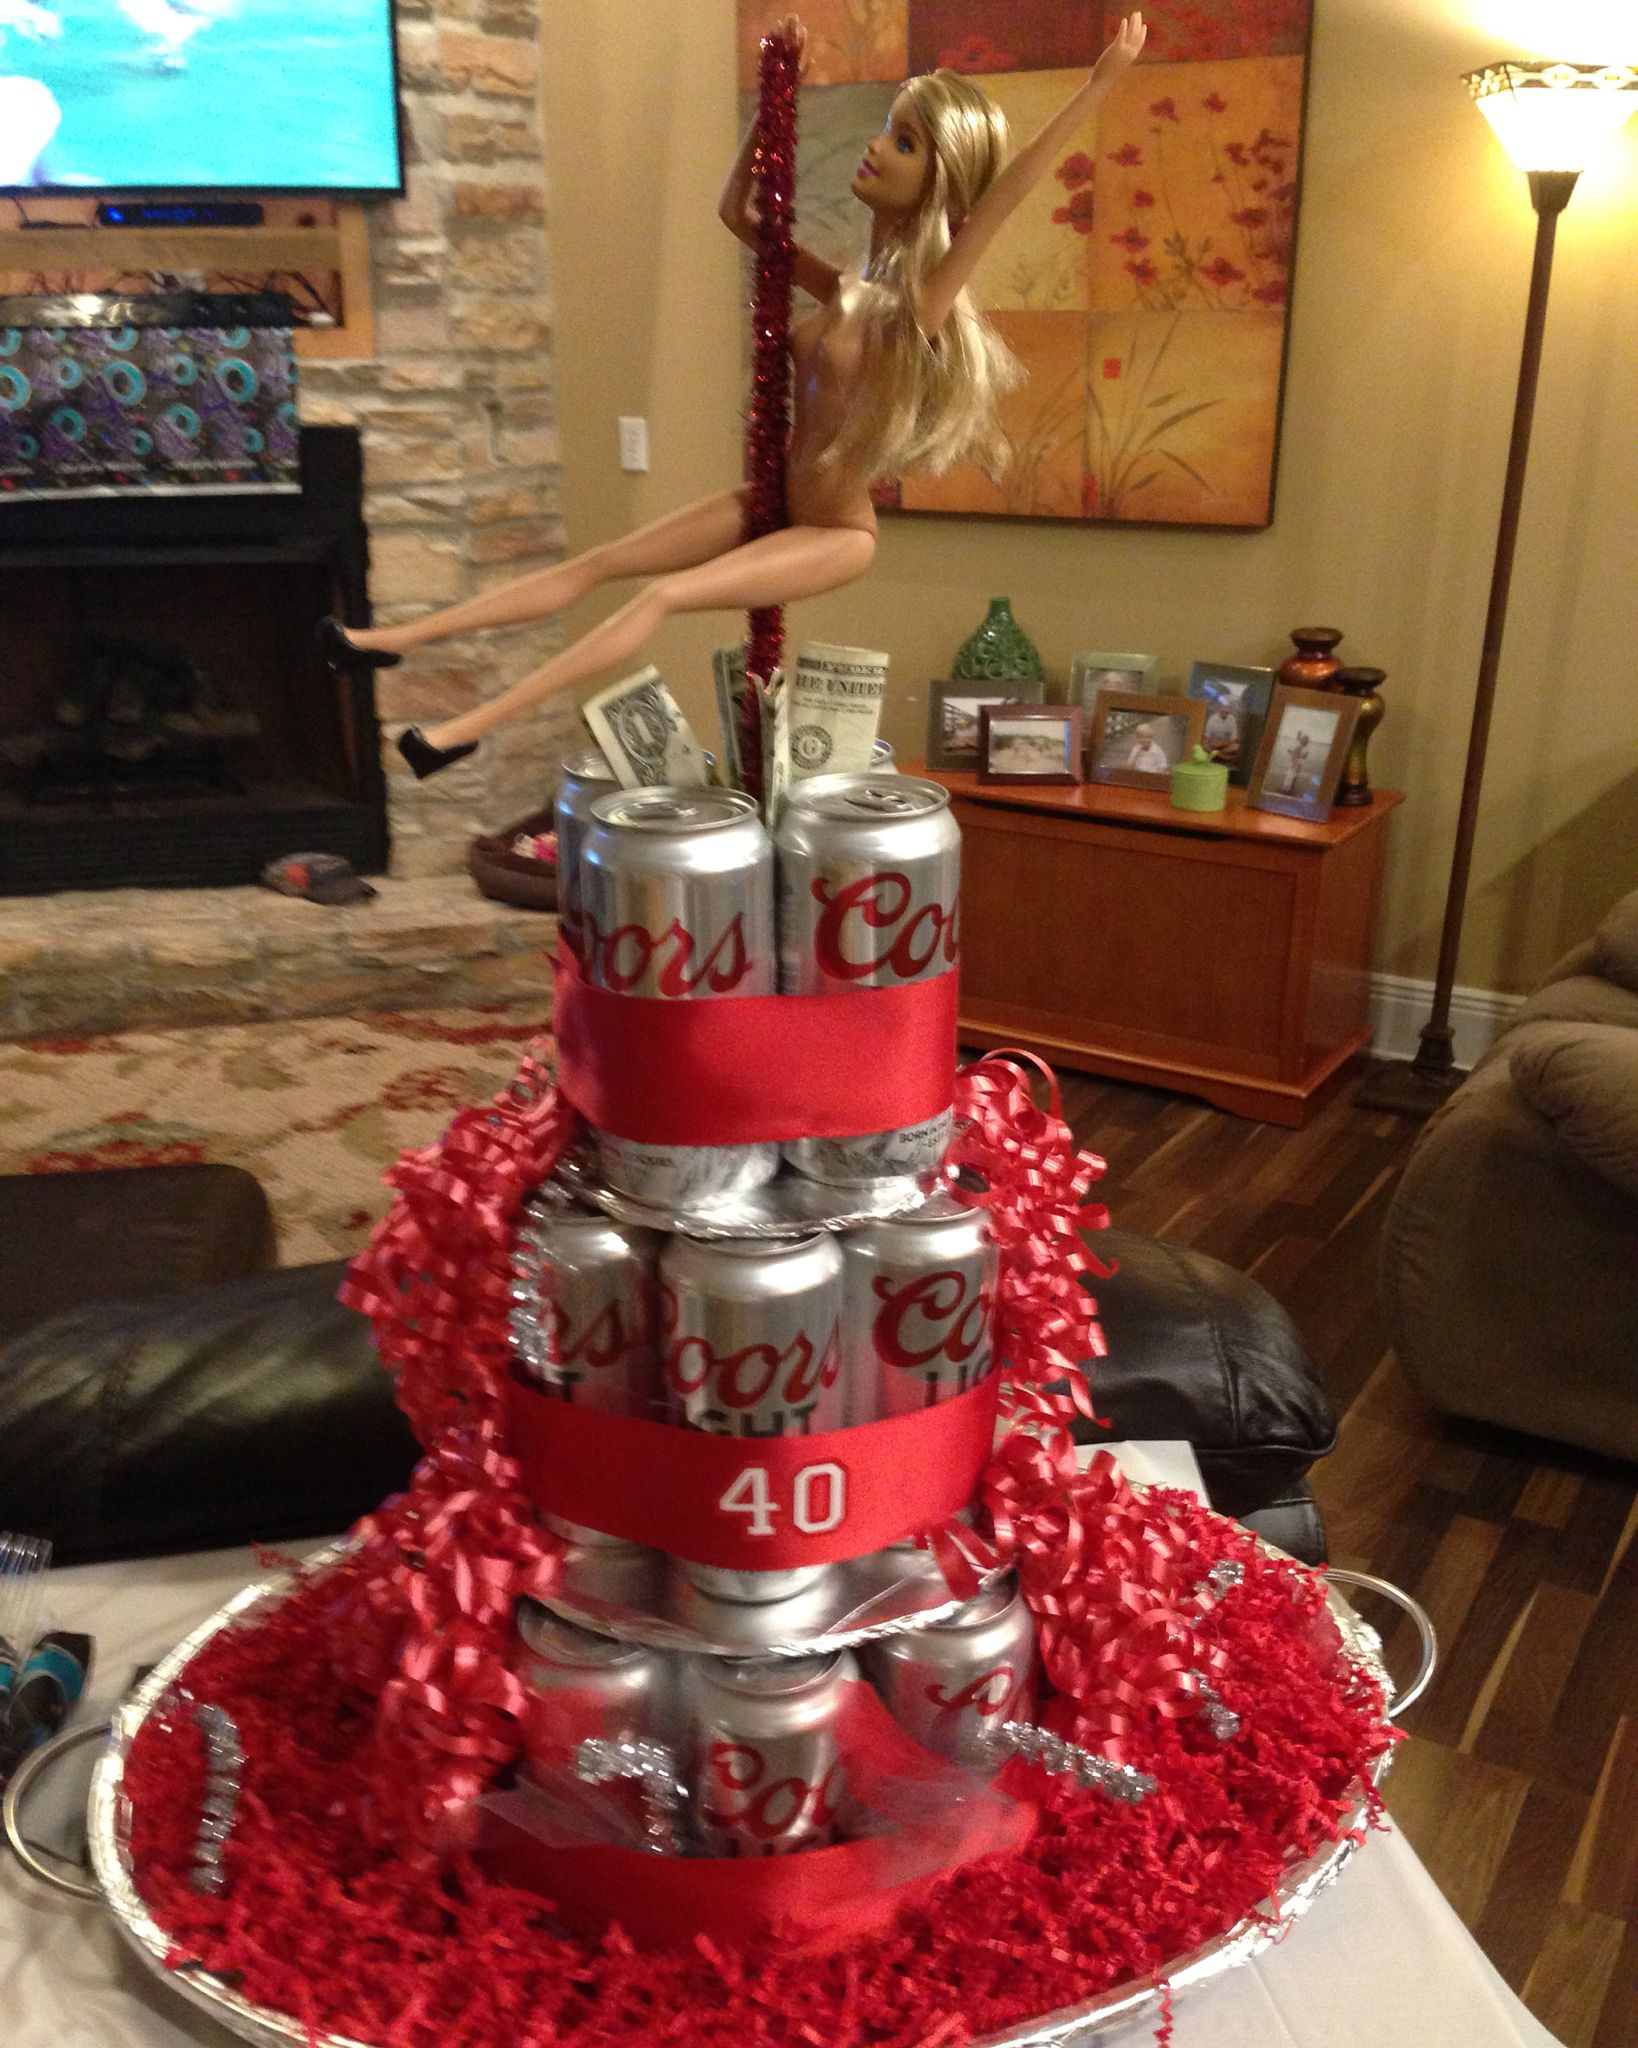 Pretty sure this is the best beer can cake ever